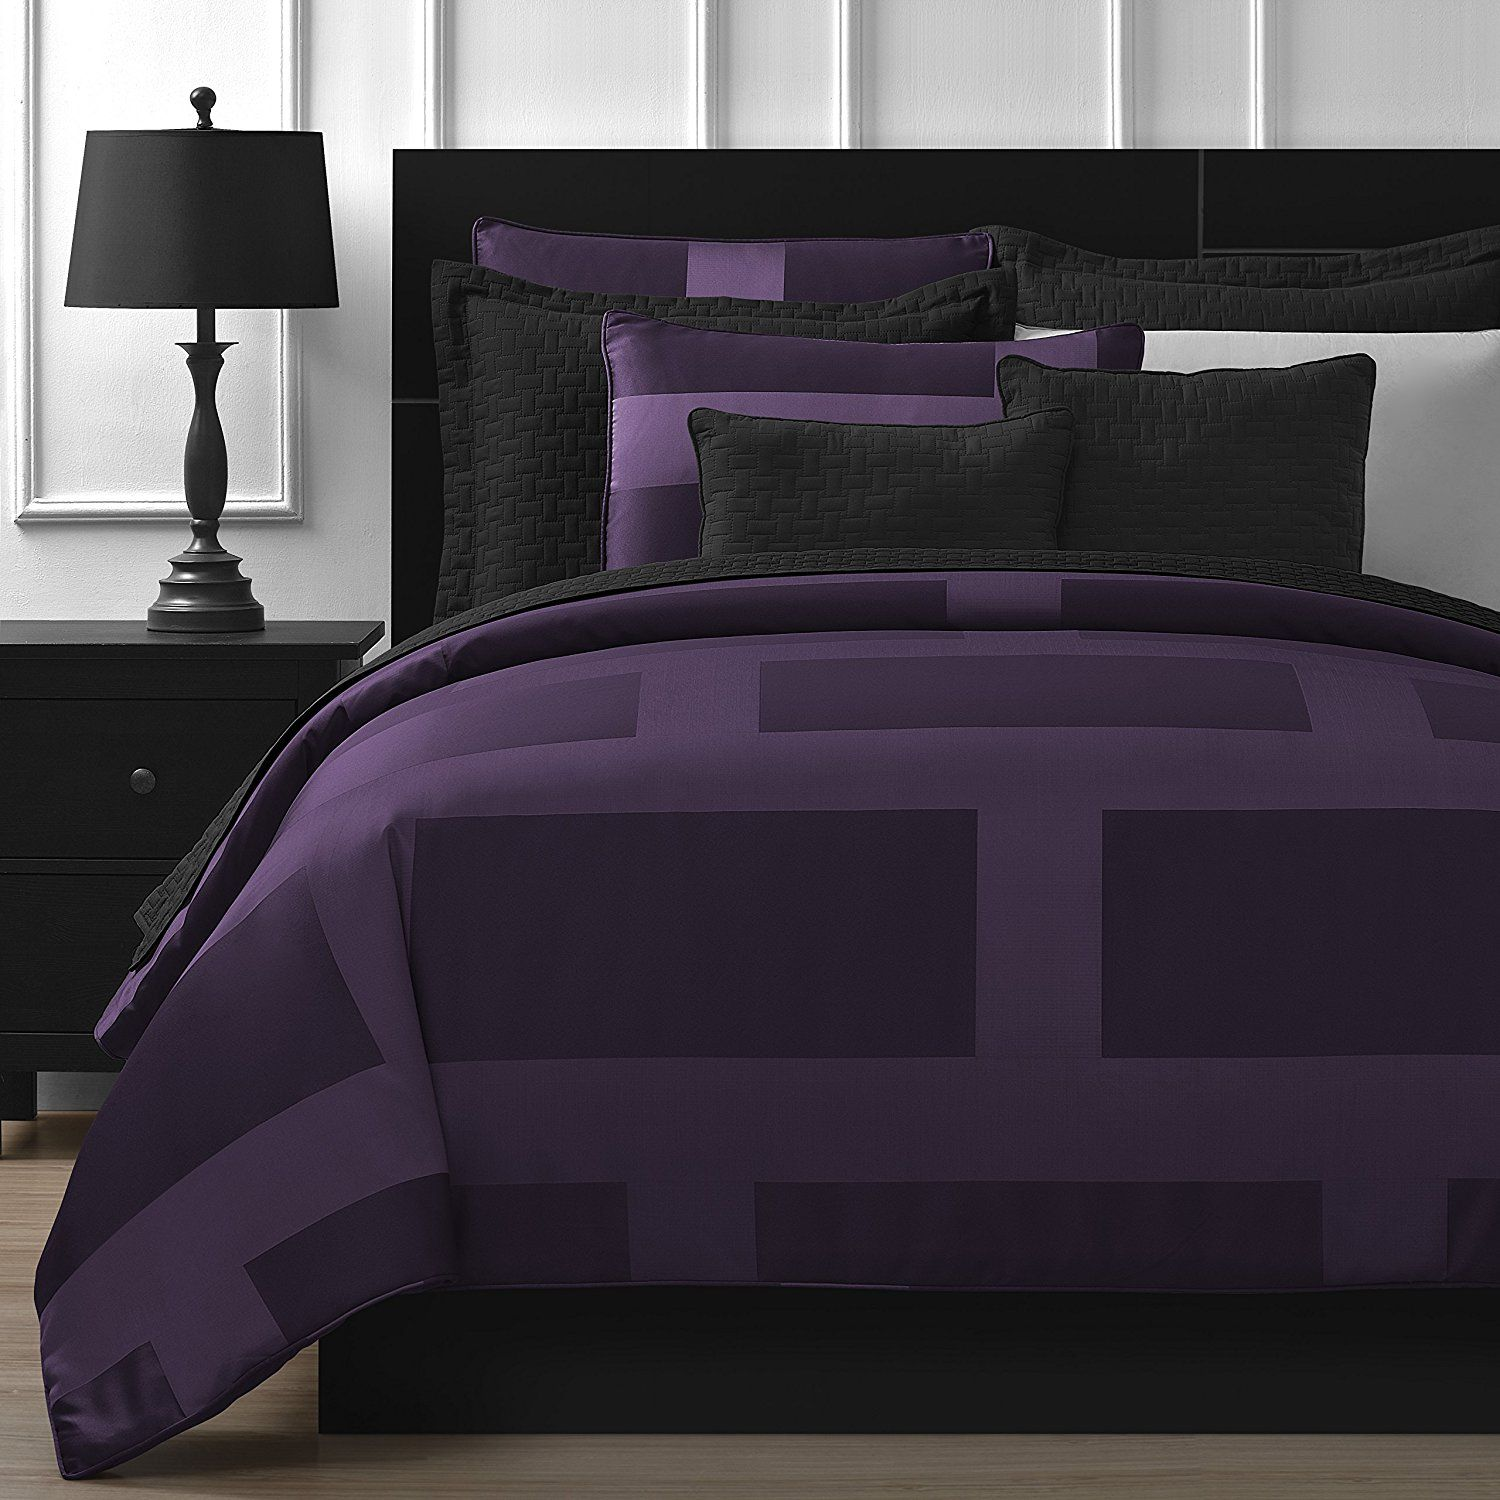 queen as quilt purple single with plum well duvet duvets in black bedroom and matching curtains silk having image canopy size king white sets bedspread cover neckroll nice comforter sham mauve covers of pillow bedding cushion tan full also cream silver bag curtain